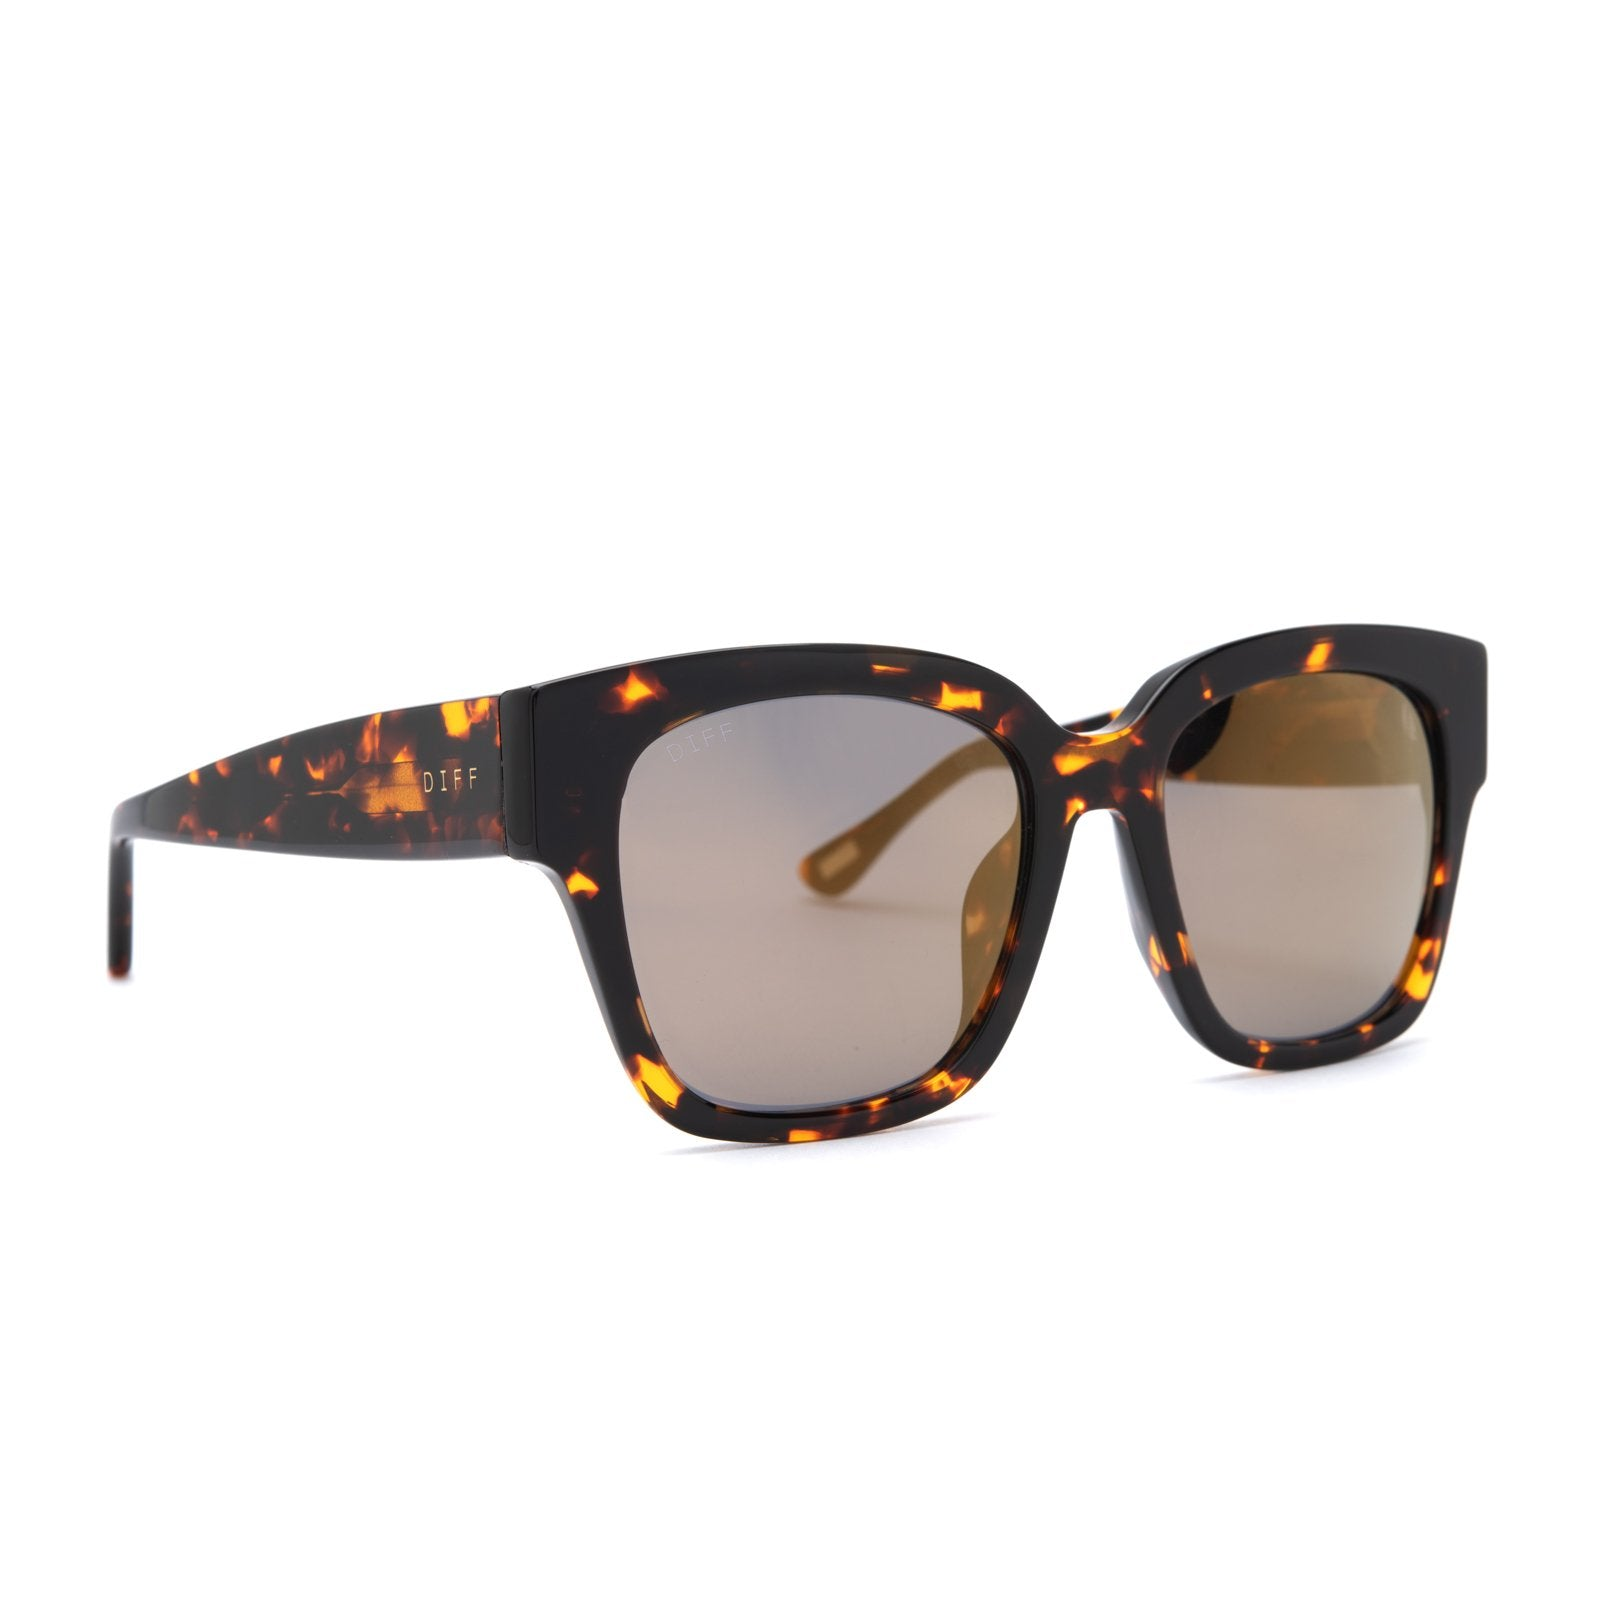 Bella II sunglasses with dark tortoise frames and gold mirror lens angle view